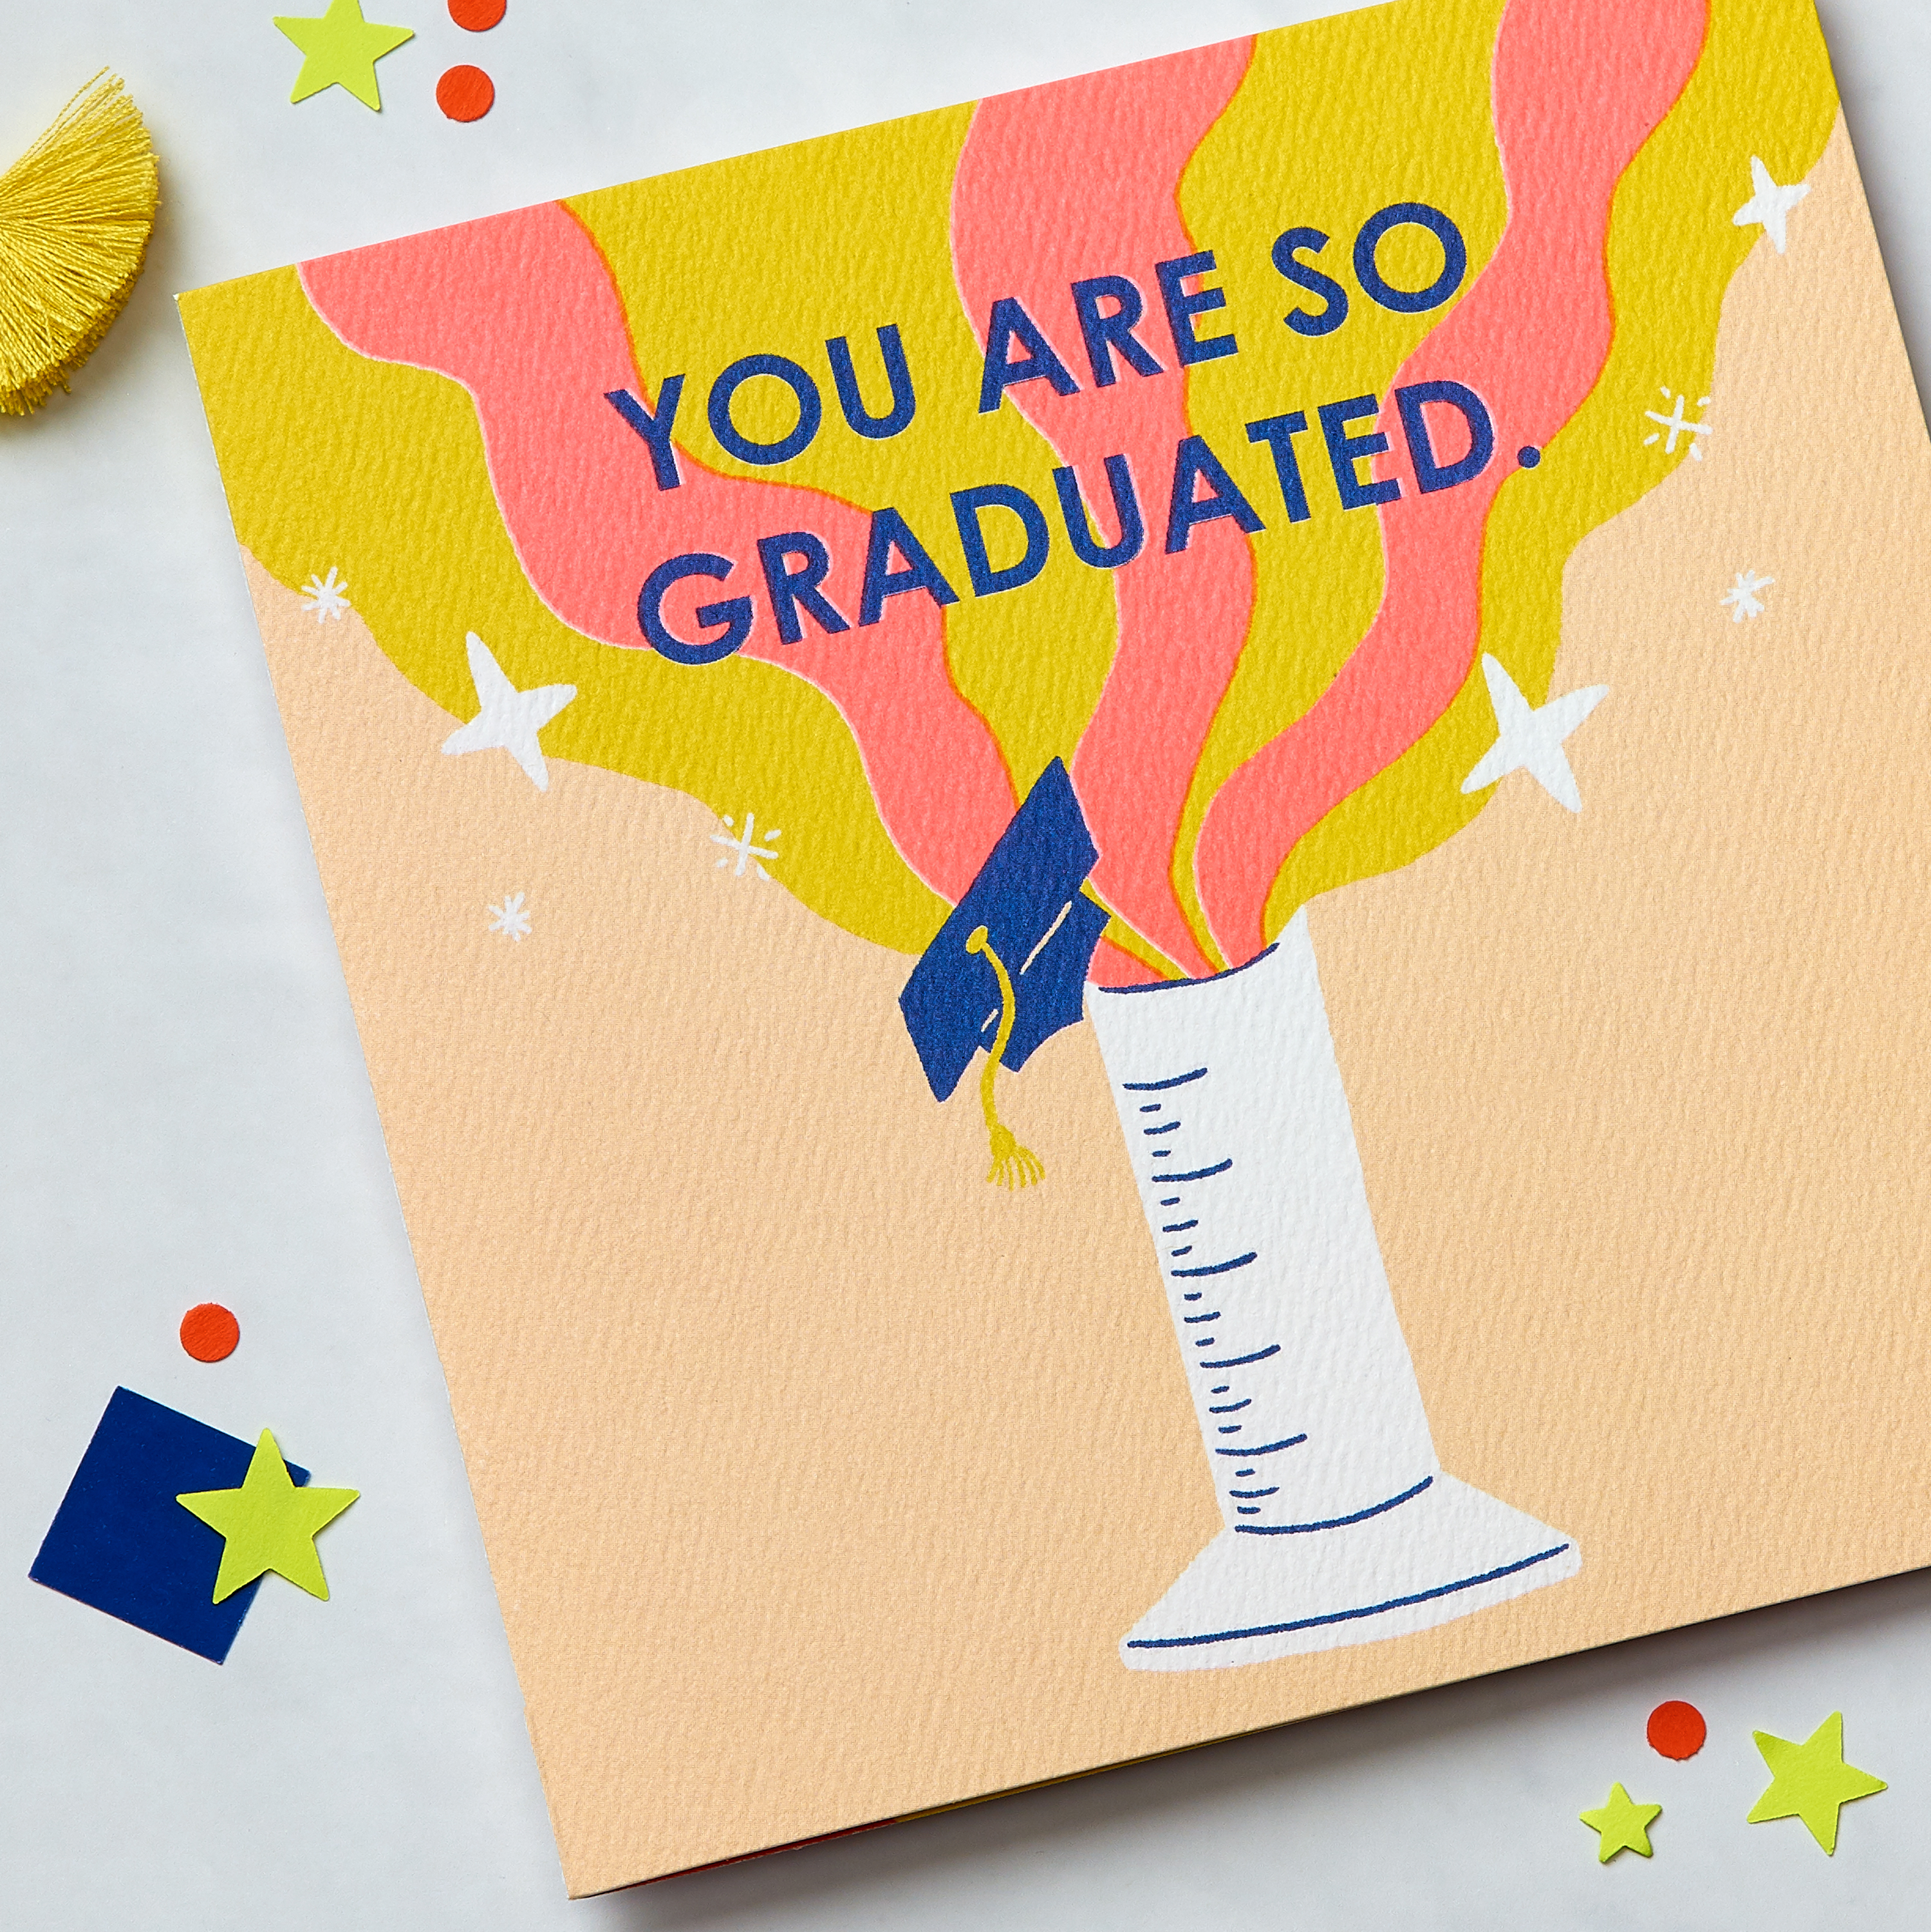 So Graduated Graduation Greeting Card image